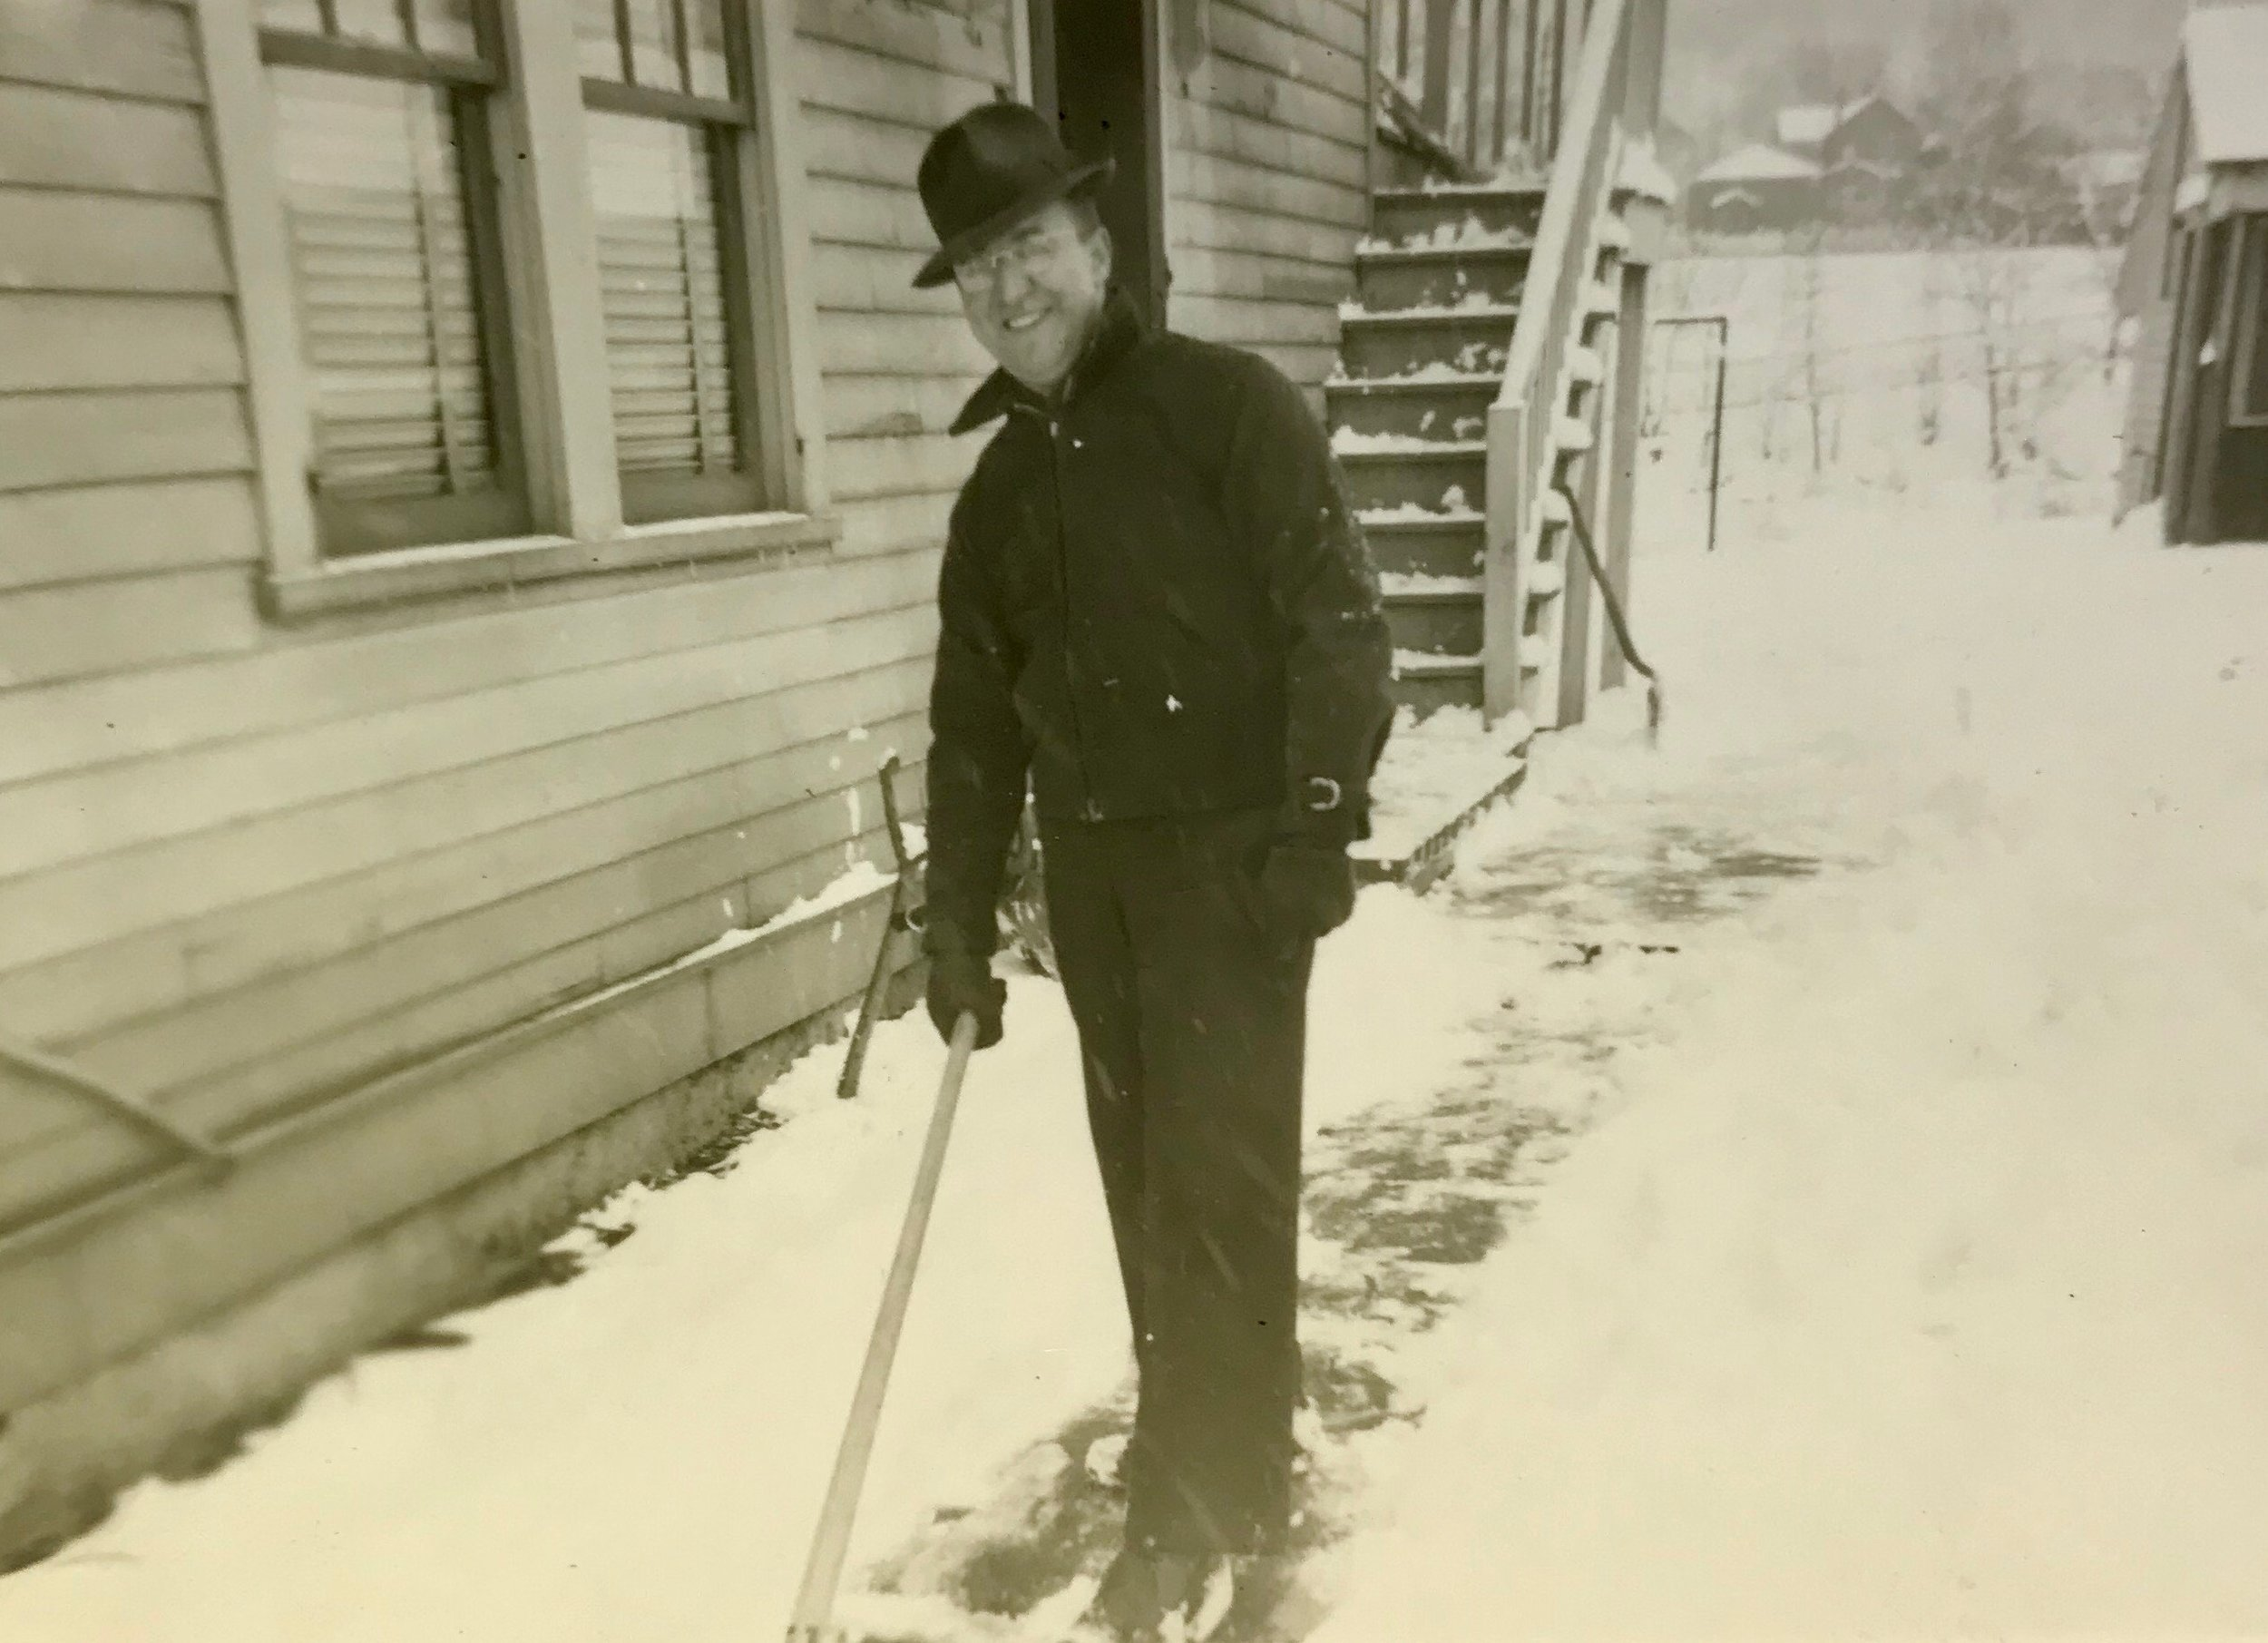 """My grandmother wrote on the back of this photograph, """"Ray Scranton, Pa 1941."""""""